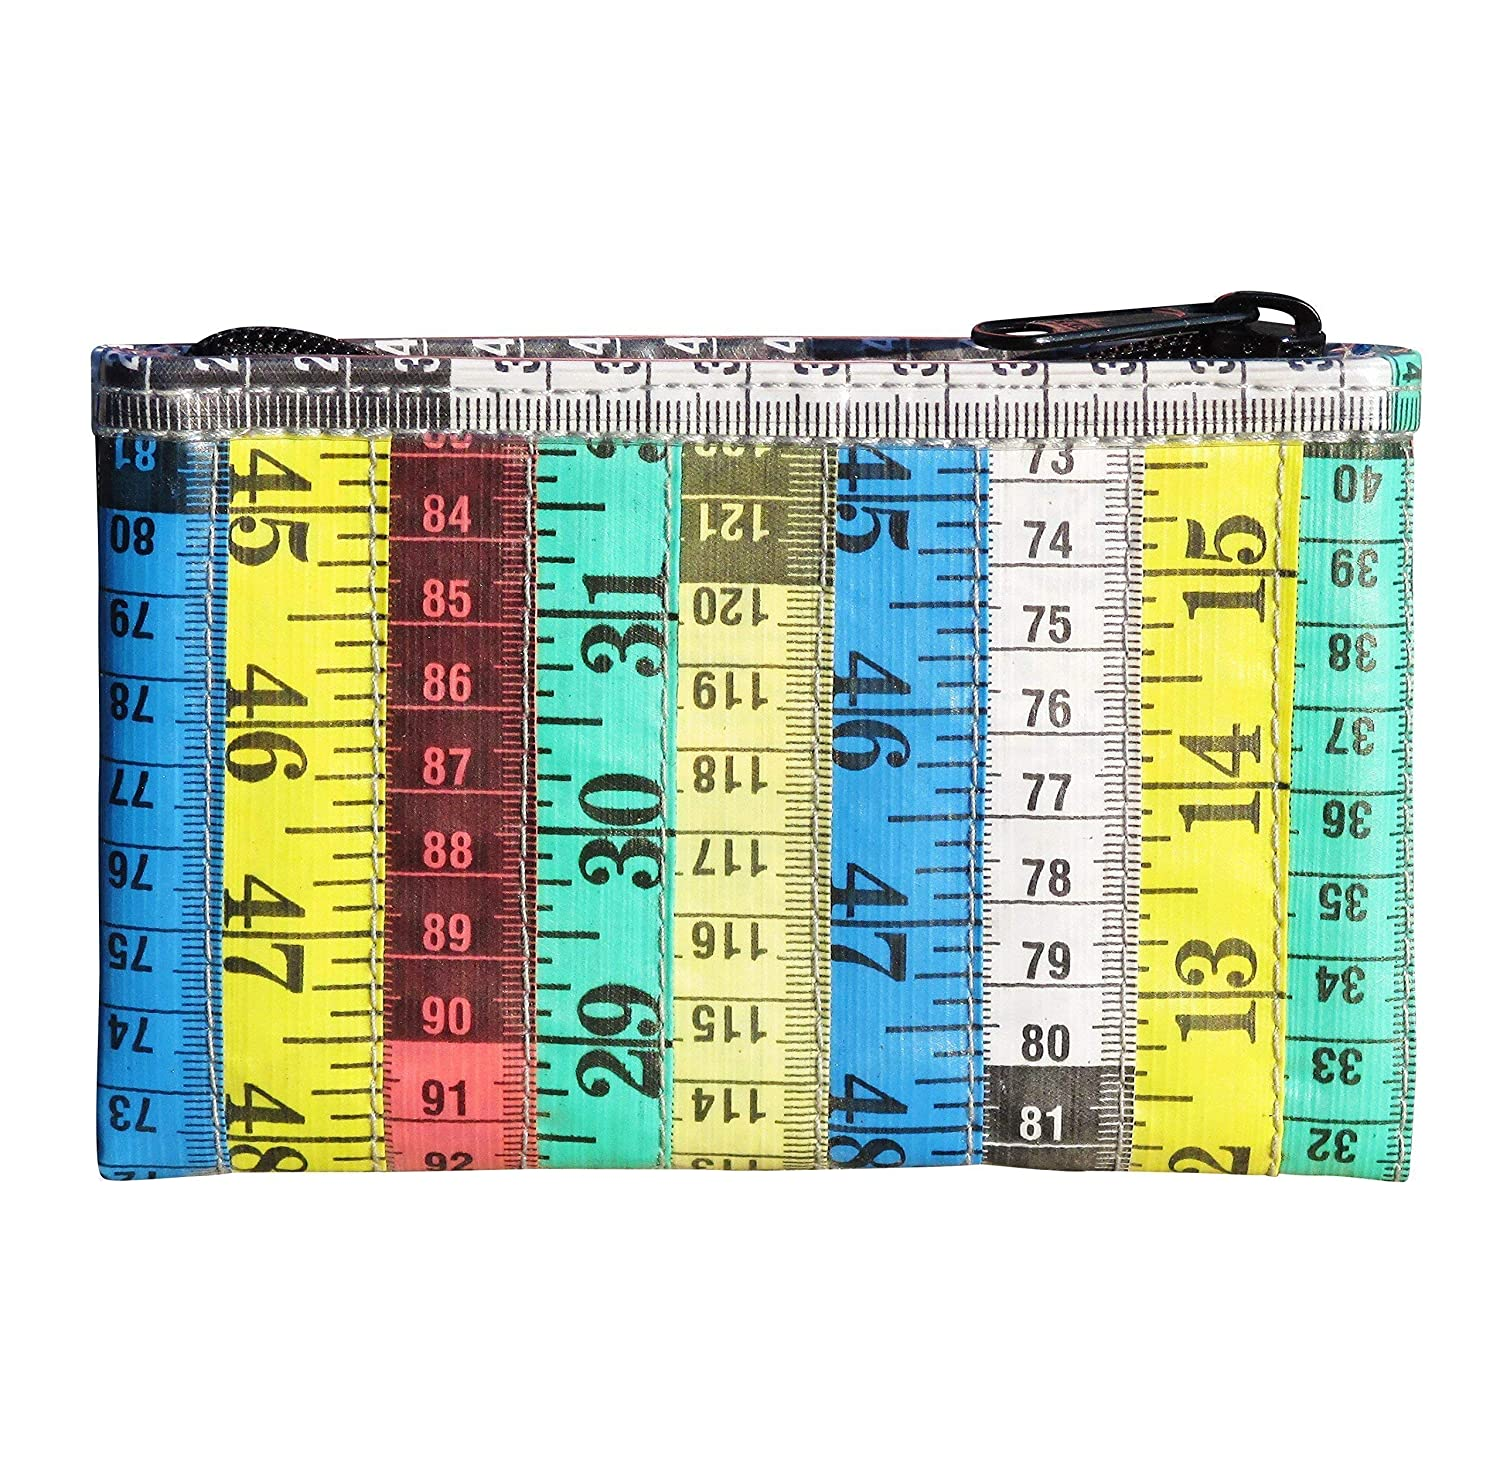 Coin Purse or Wallet created with Upcycled Measuring Tape Tape Measure Coin Pouch in Light Pink